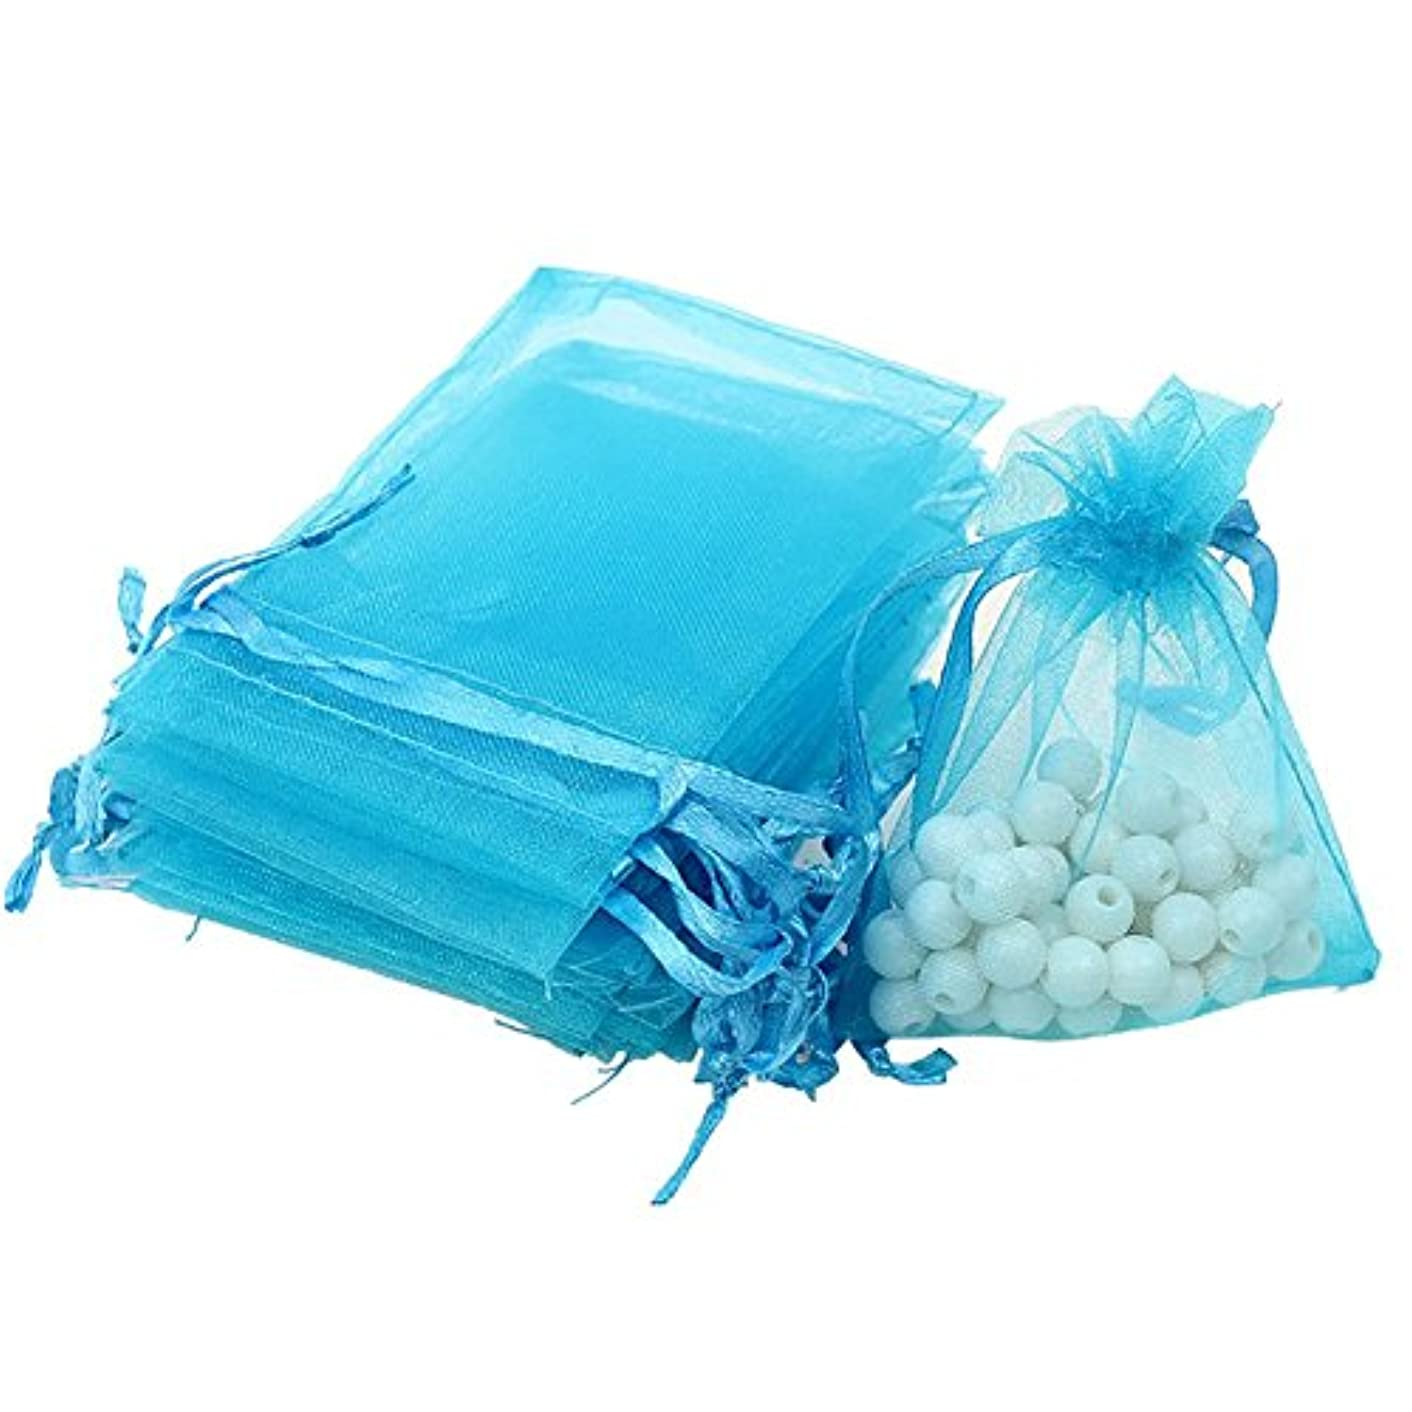 Dealglad 50pcs Drawstring Organza Jewelry Candy Pouch Christmas Wedding Party Favor Gift Bags (3x4, Lake Blue)